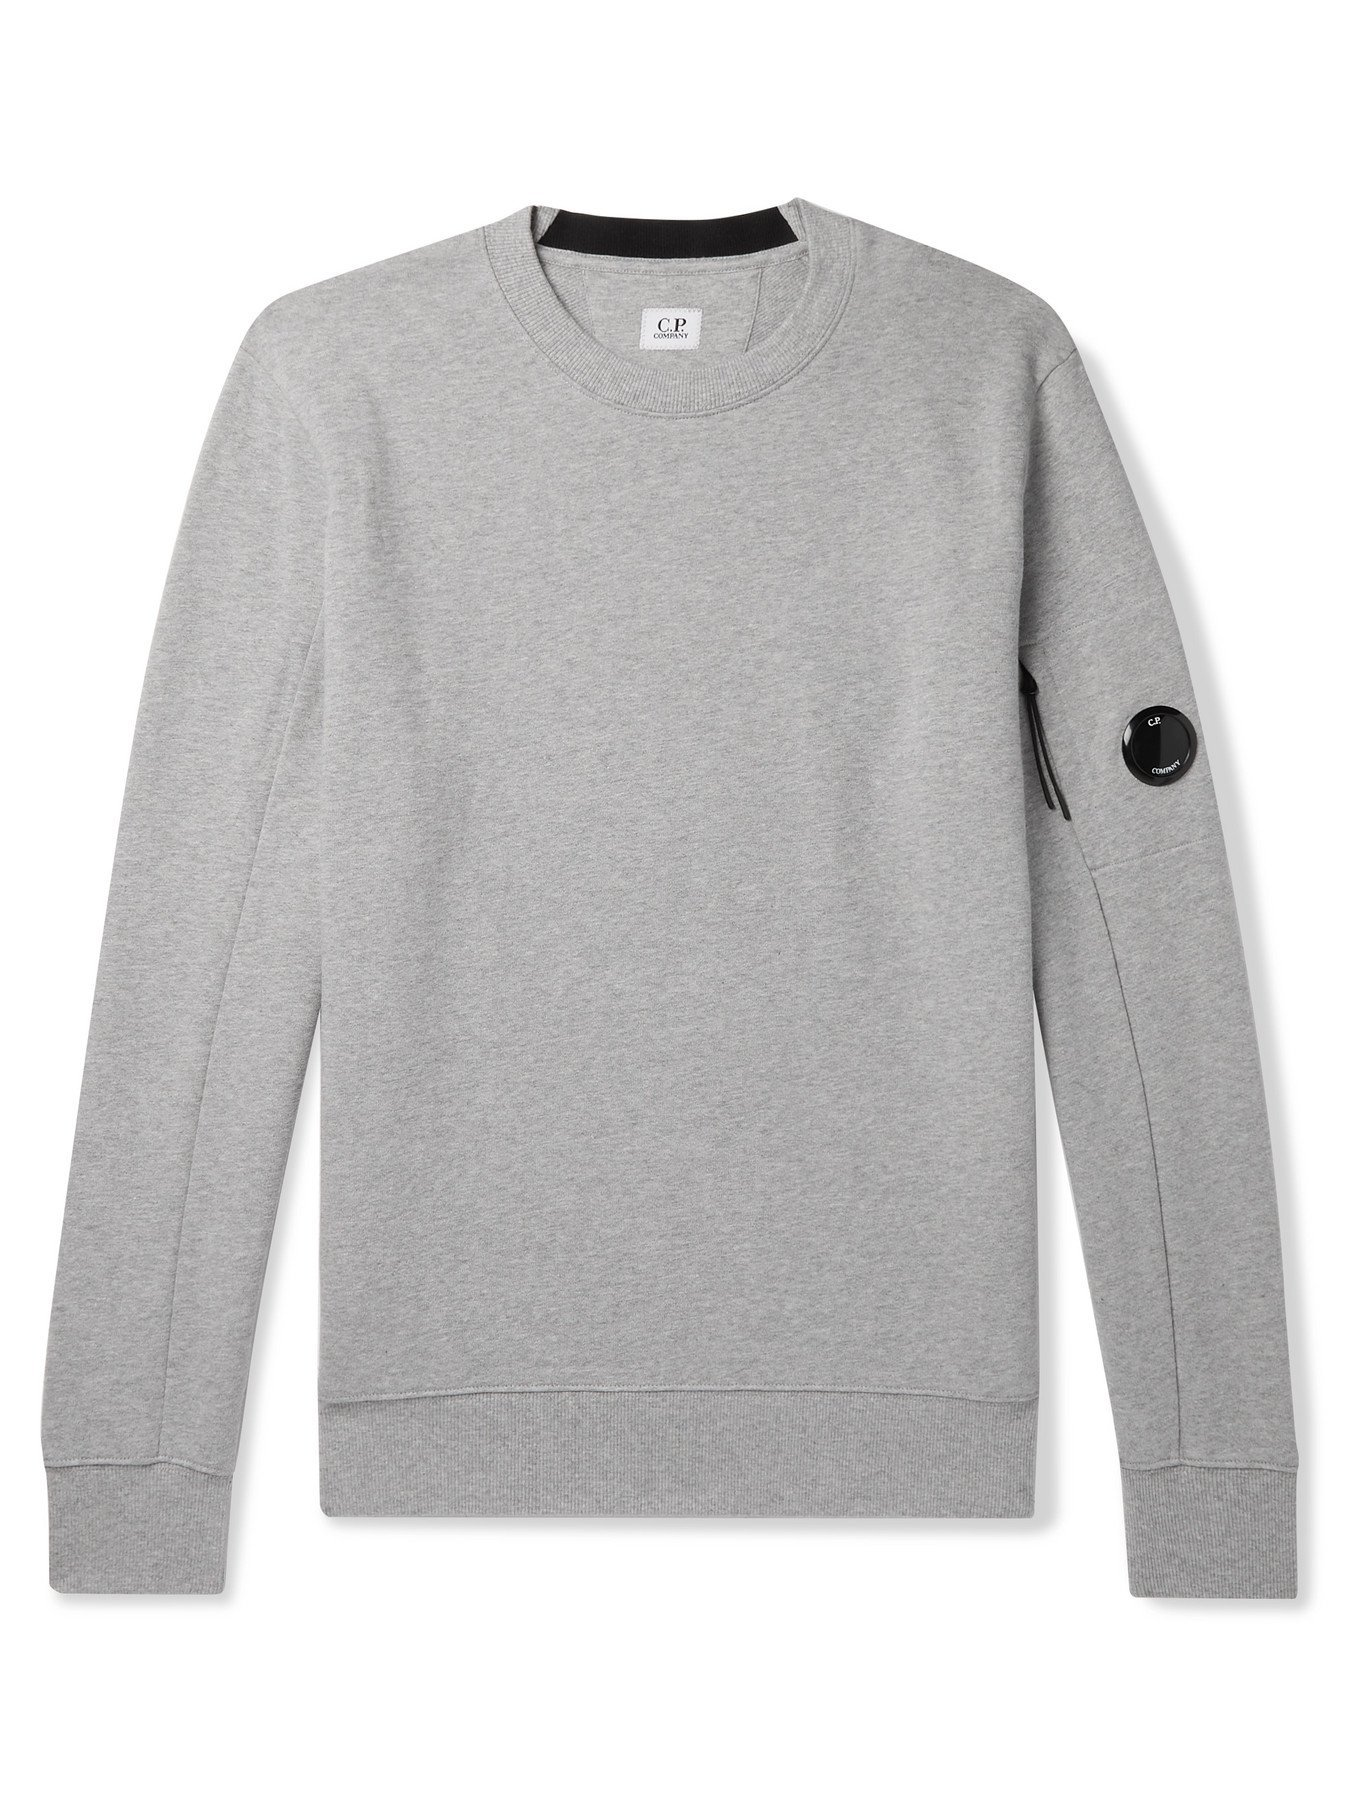 Photo: C.P. COMPANY - Logo-Appliquéd Fleece-Back Cotton-Jersey Sweatshirt - Gray